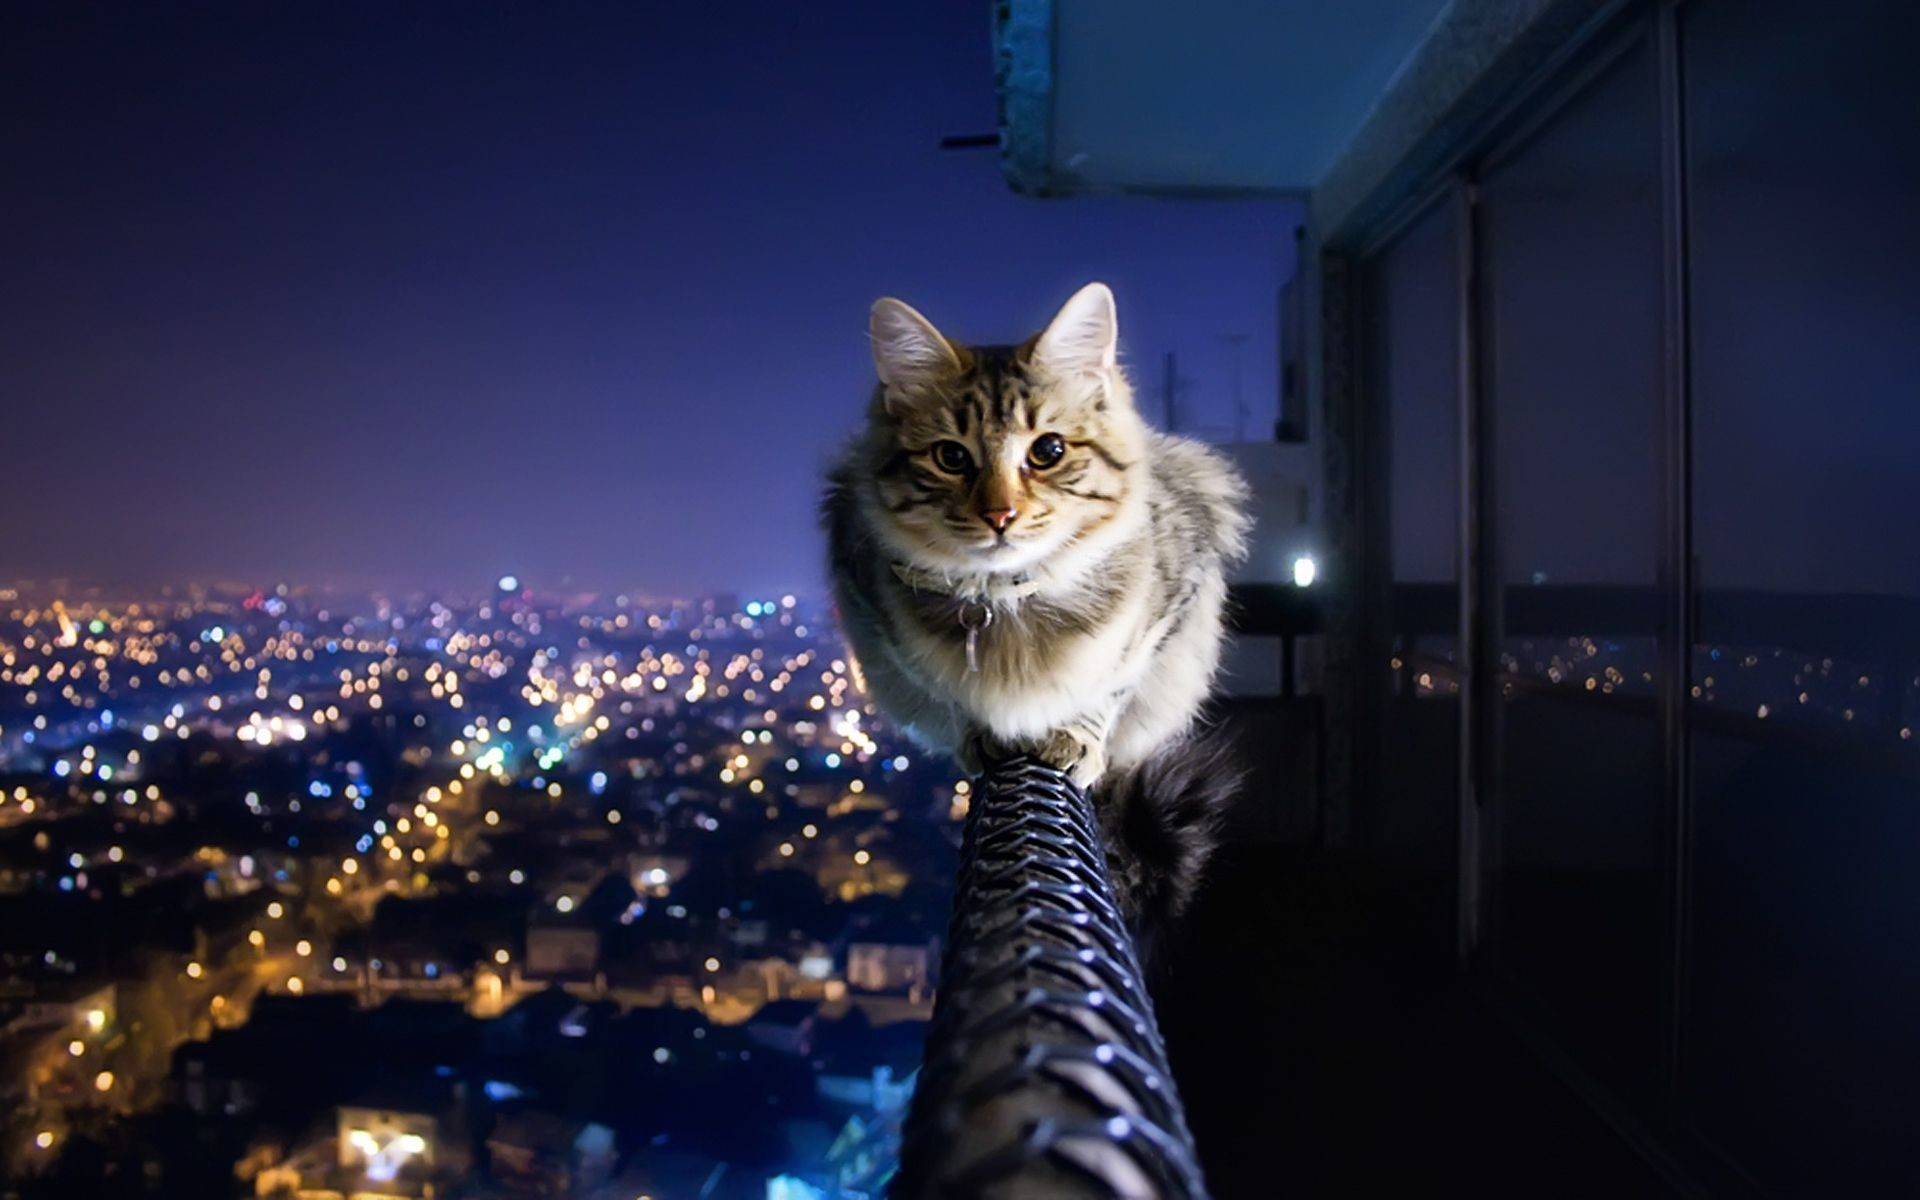 Res: 1920x1200, Best HD Wallpapers Collection of Cat HD - , 04.22.14 for PC & Mac,  Tablet, Laptop, Mobile